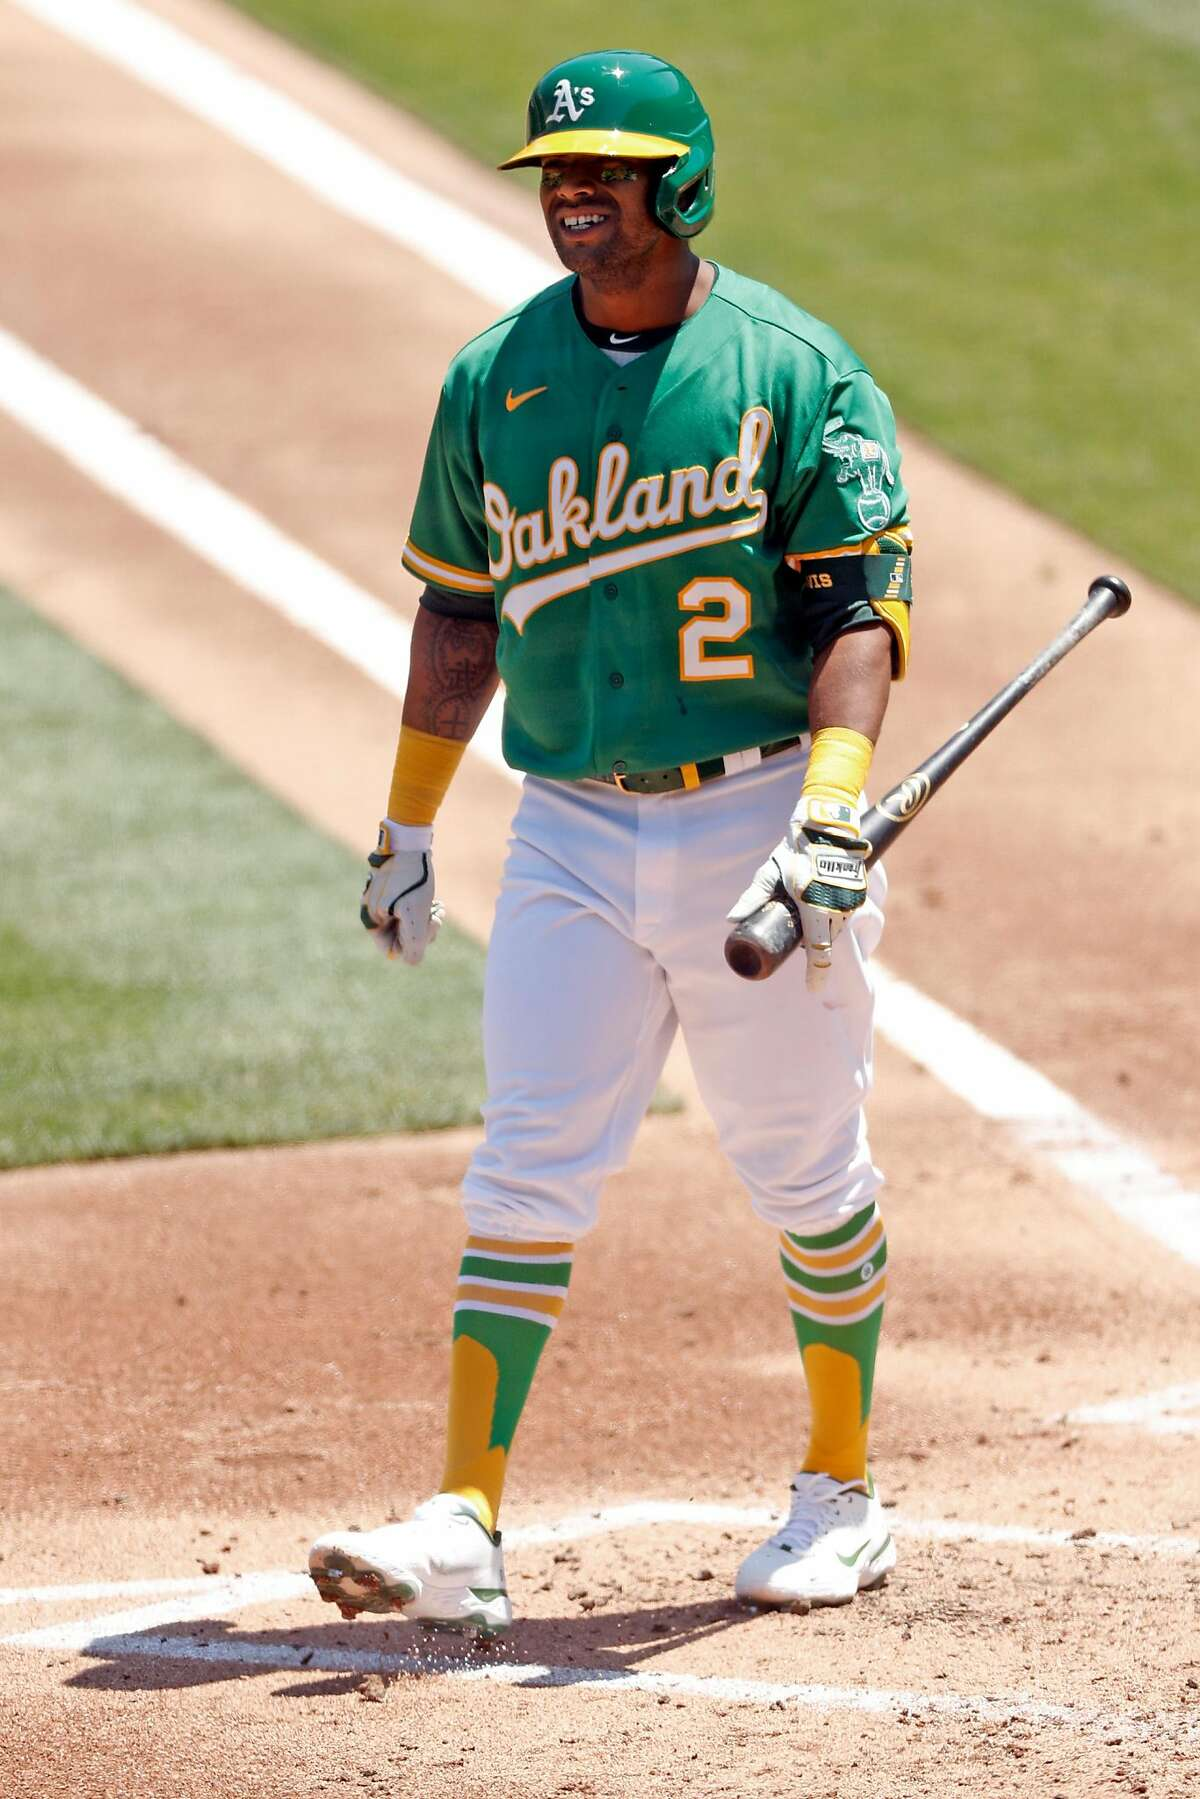 Oakland Athletics' Khris Davis reacts to lining out in 2nd inning against Los Angeles Angels in MLB game at Oakland Coliseum in Oakland, Calif., on Monday, July 27, 2020.